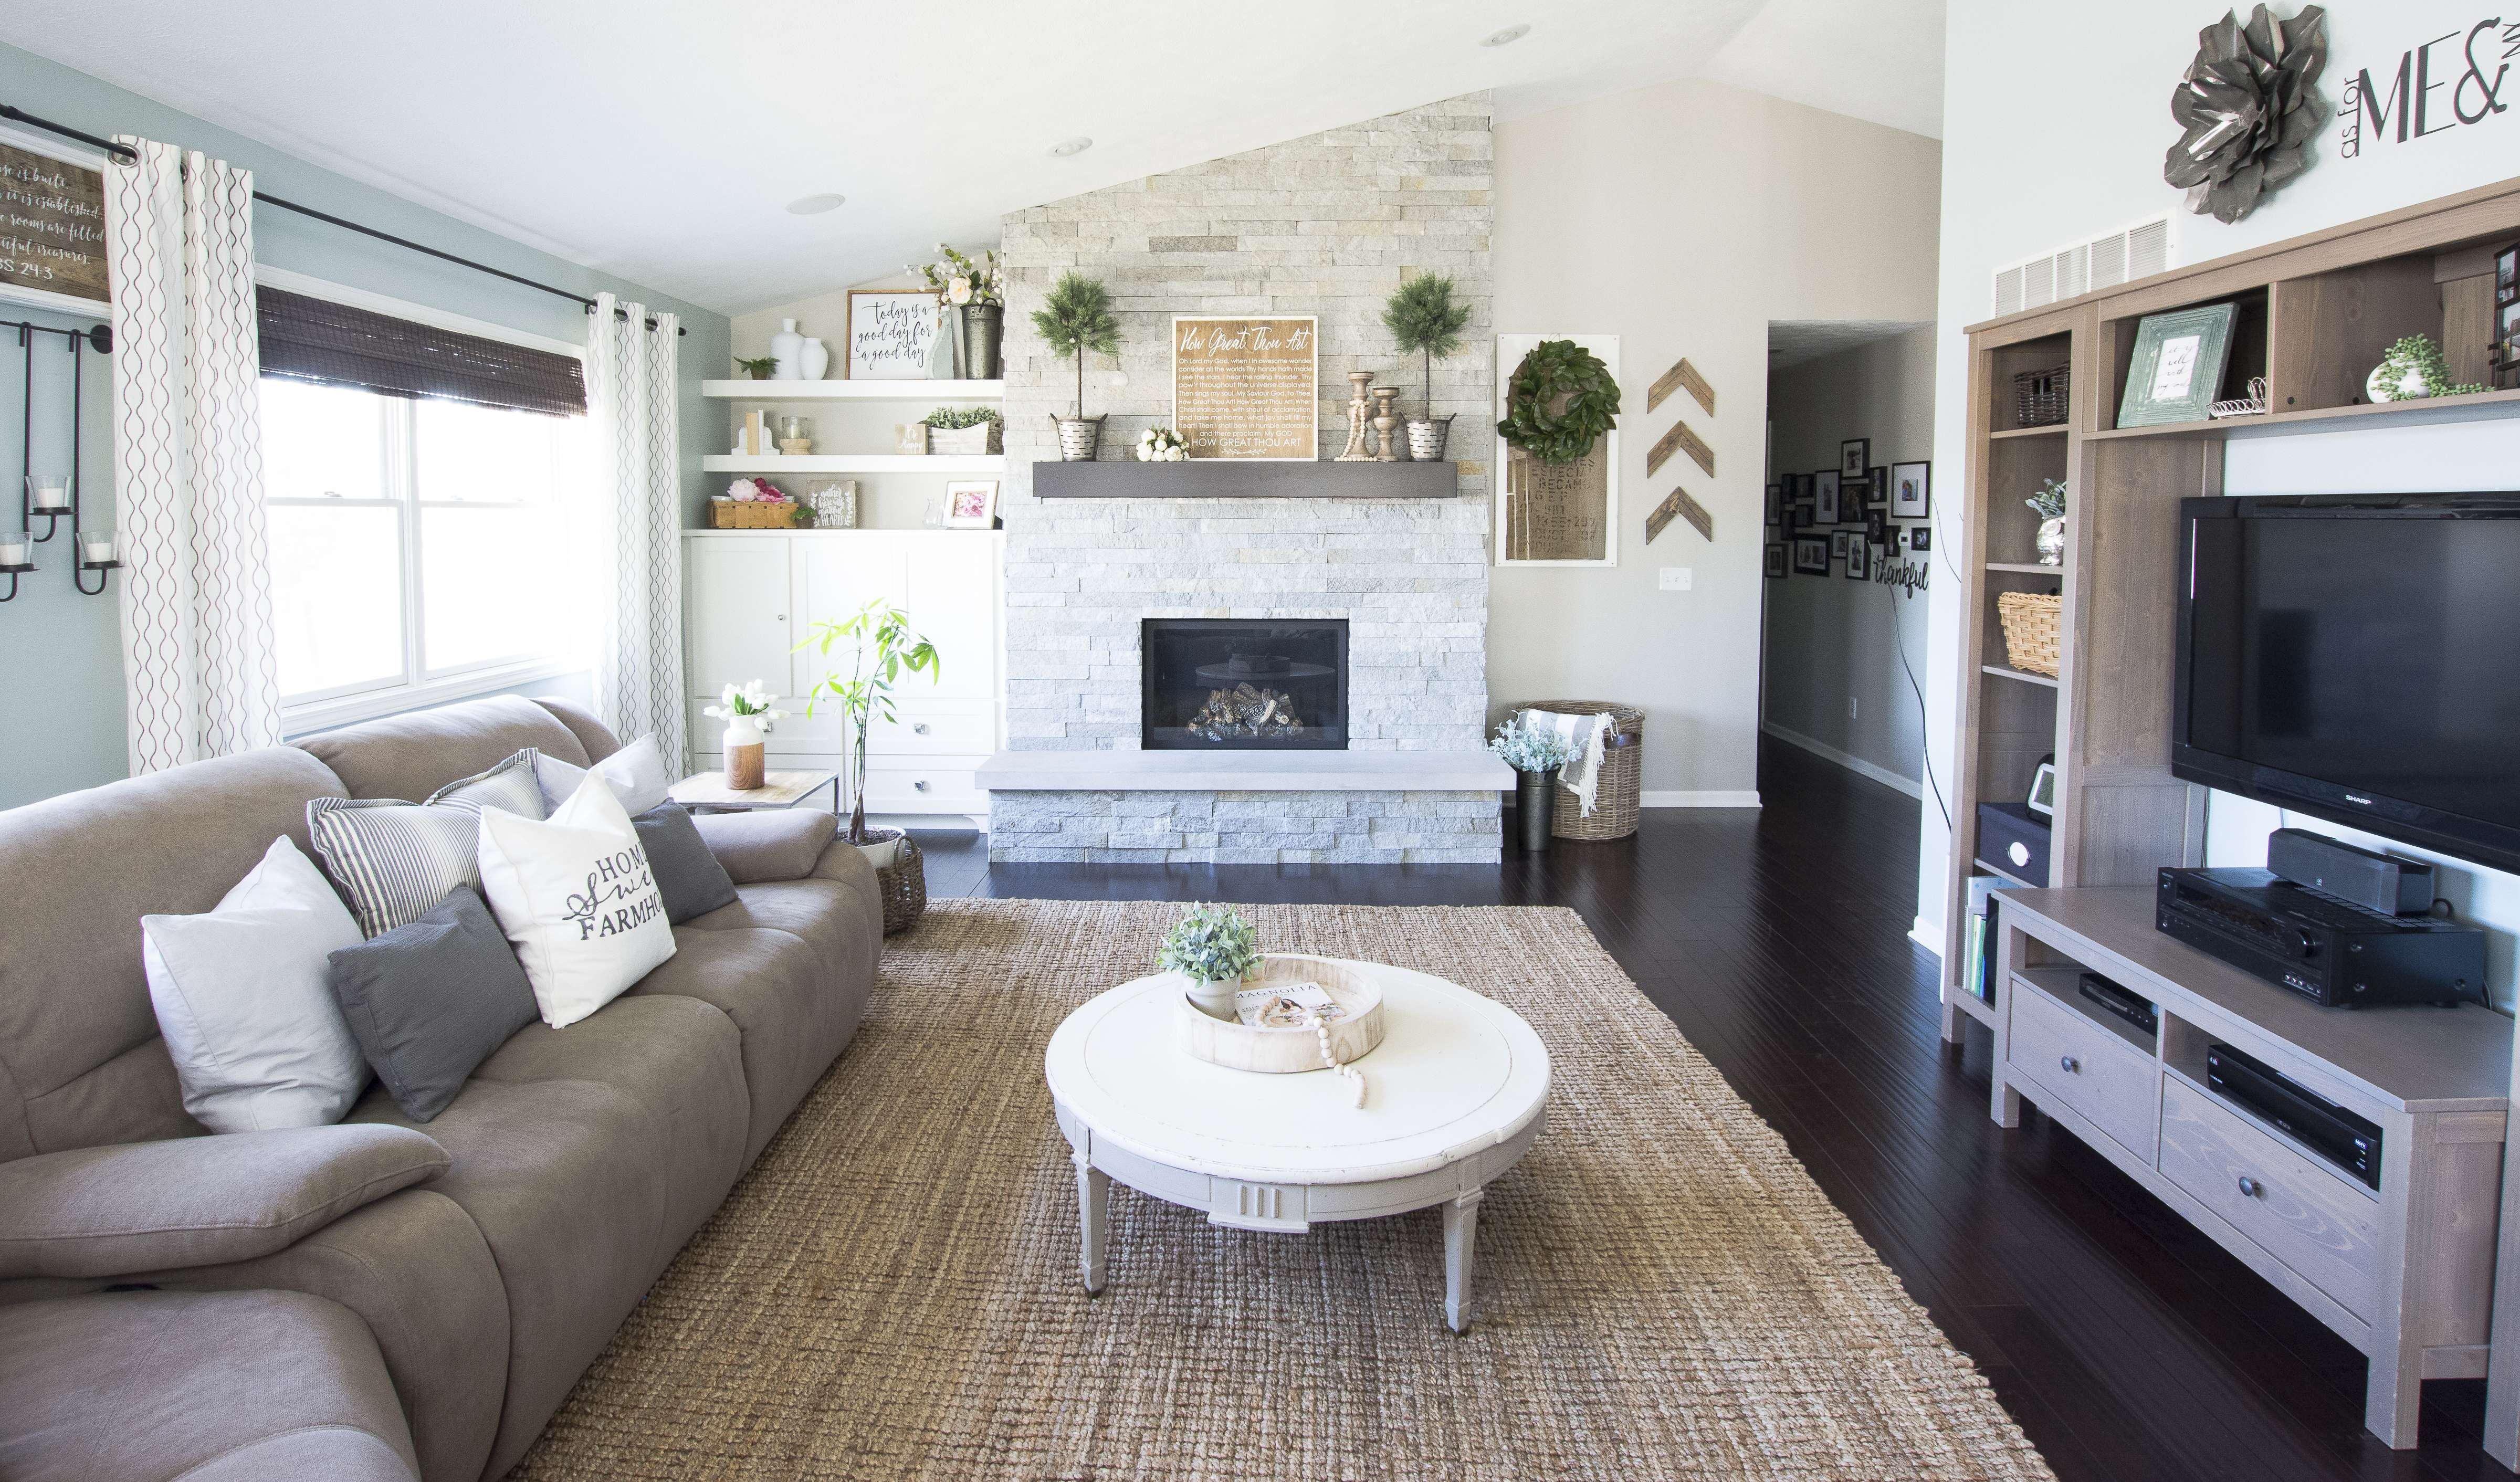 spring-home-tour-living-room-2017-graceinmyspace-com